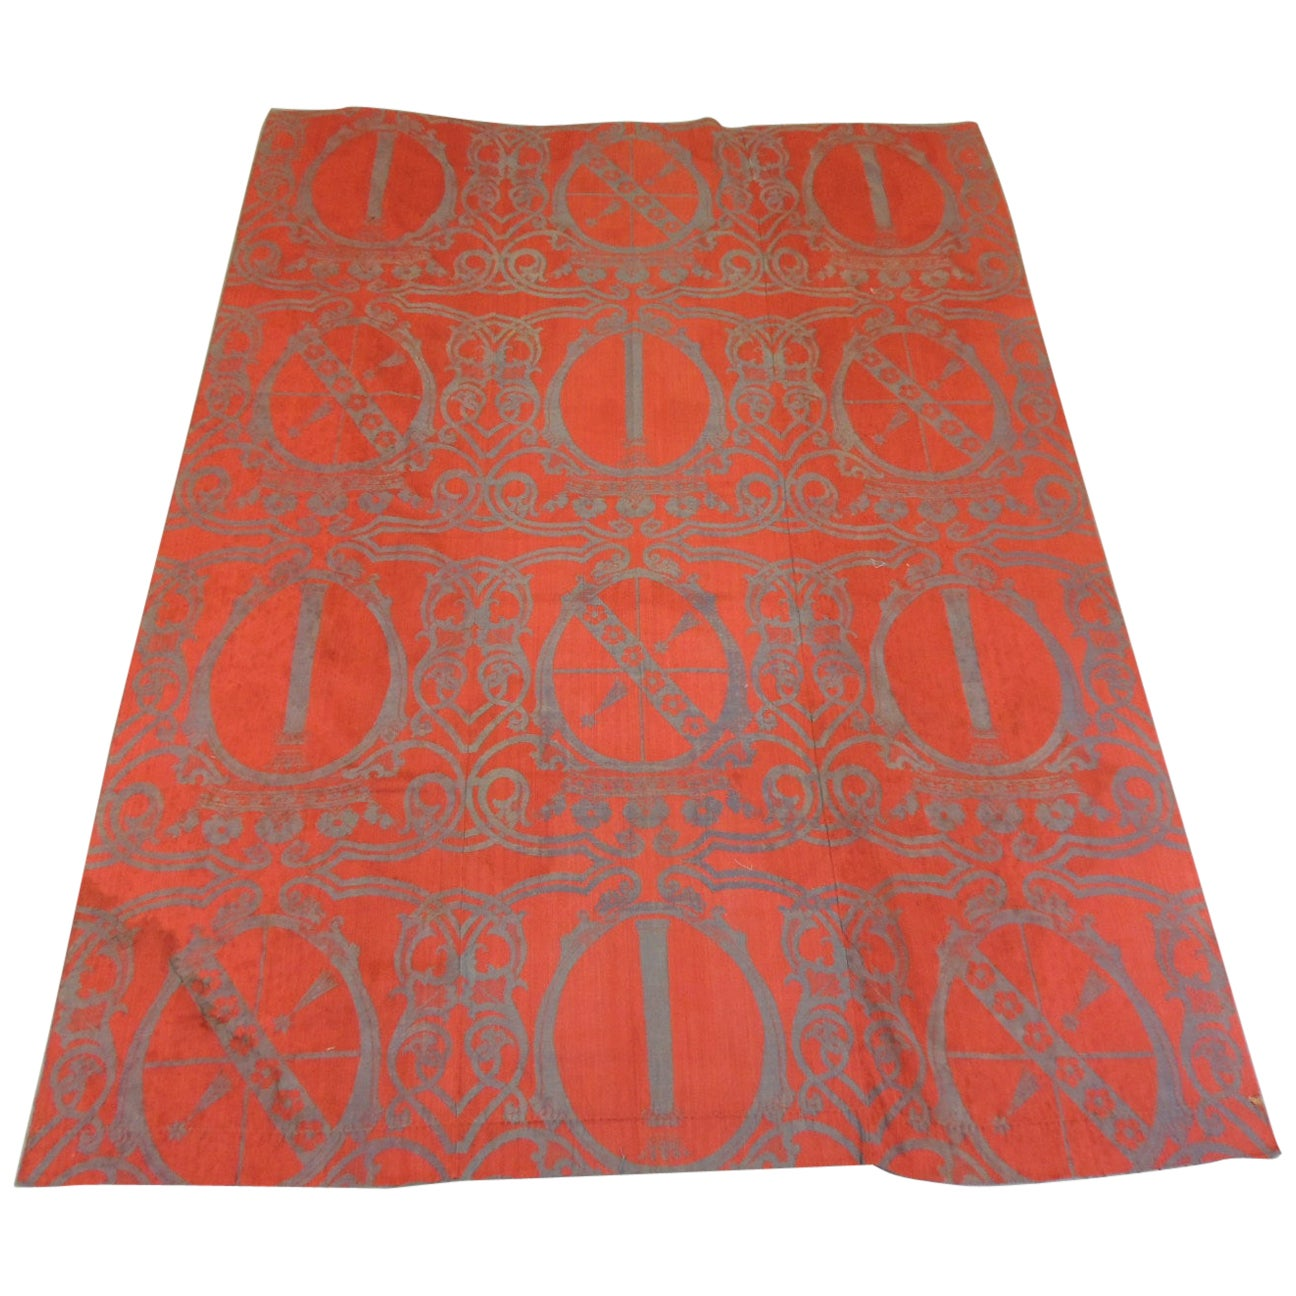 Monumental Grey and Red Woven Textile Panel